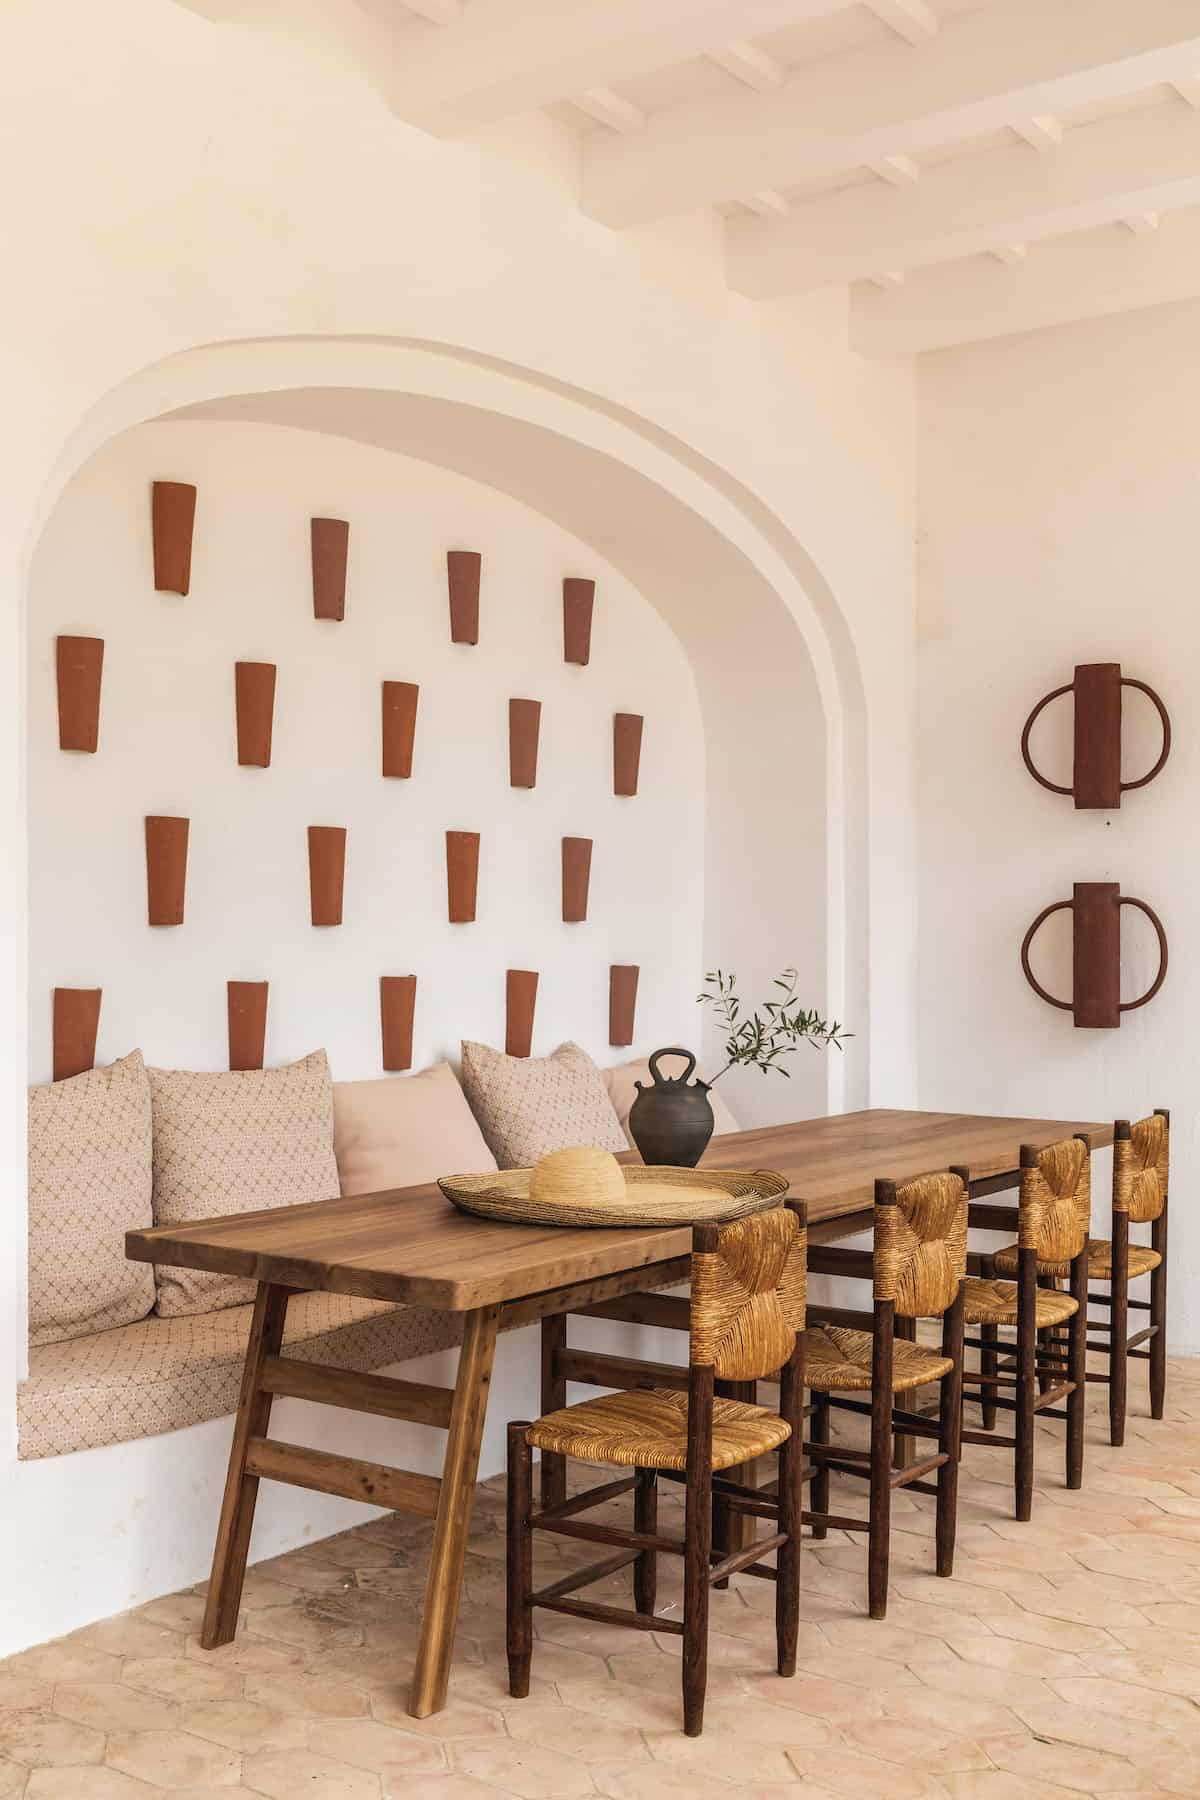 Dining table in the Hotel Experimental in Menorca with dark wooden chairs and a seating bench integrated into the wall.